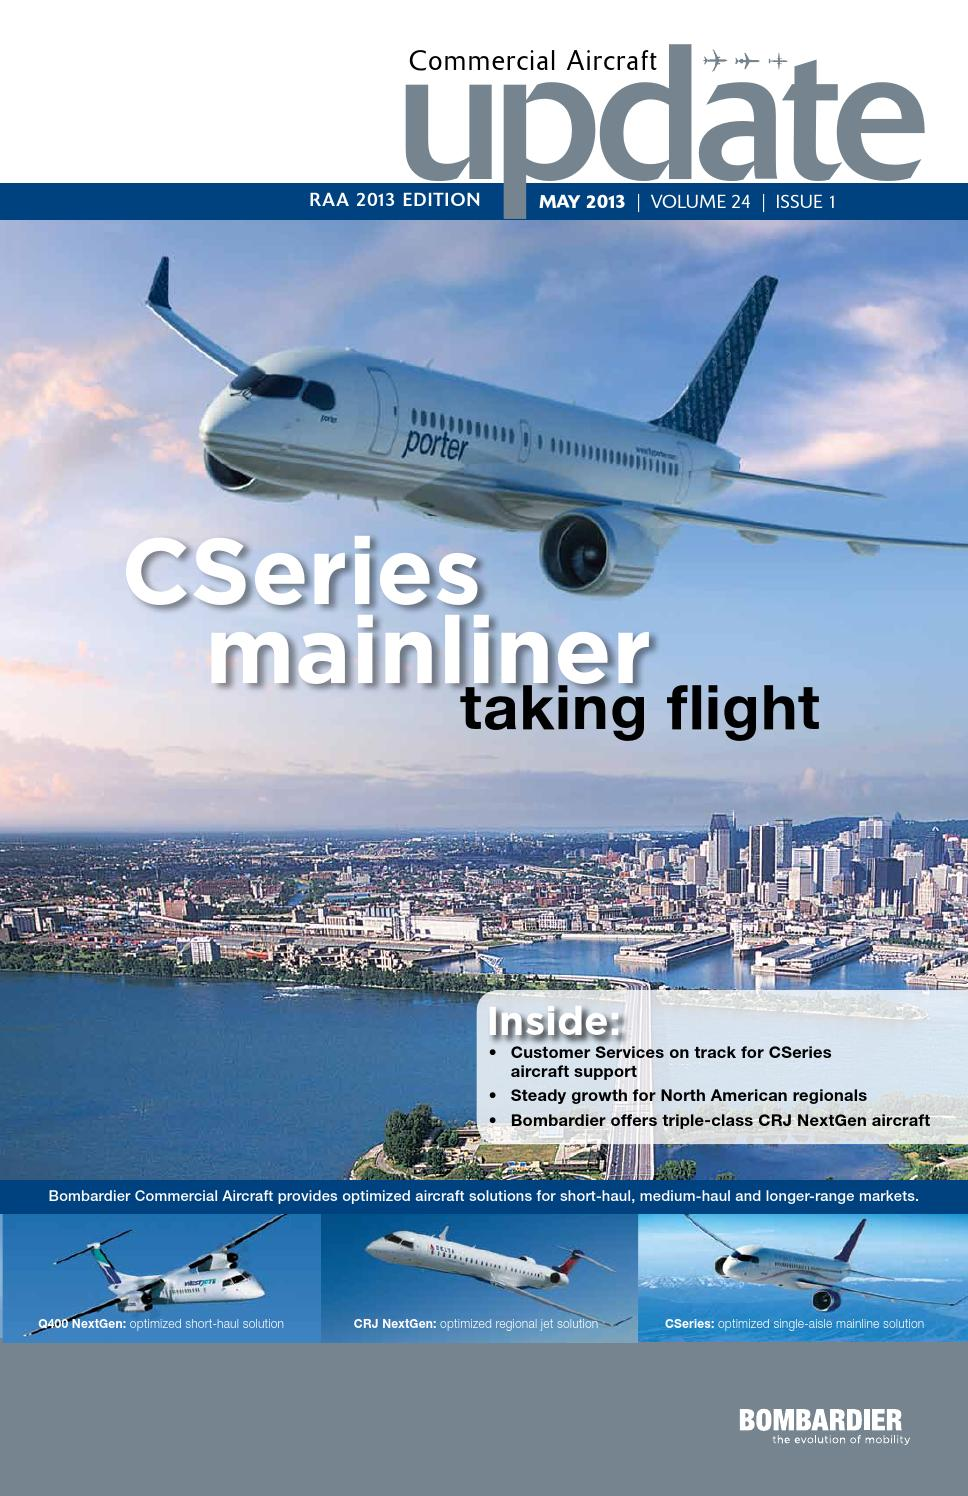 Bombardier Commercial Aircraft Update - May 2013 by say what!  communications - issuu